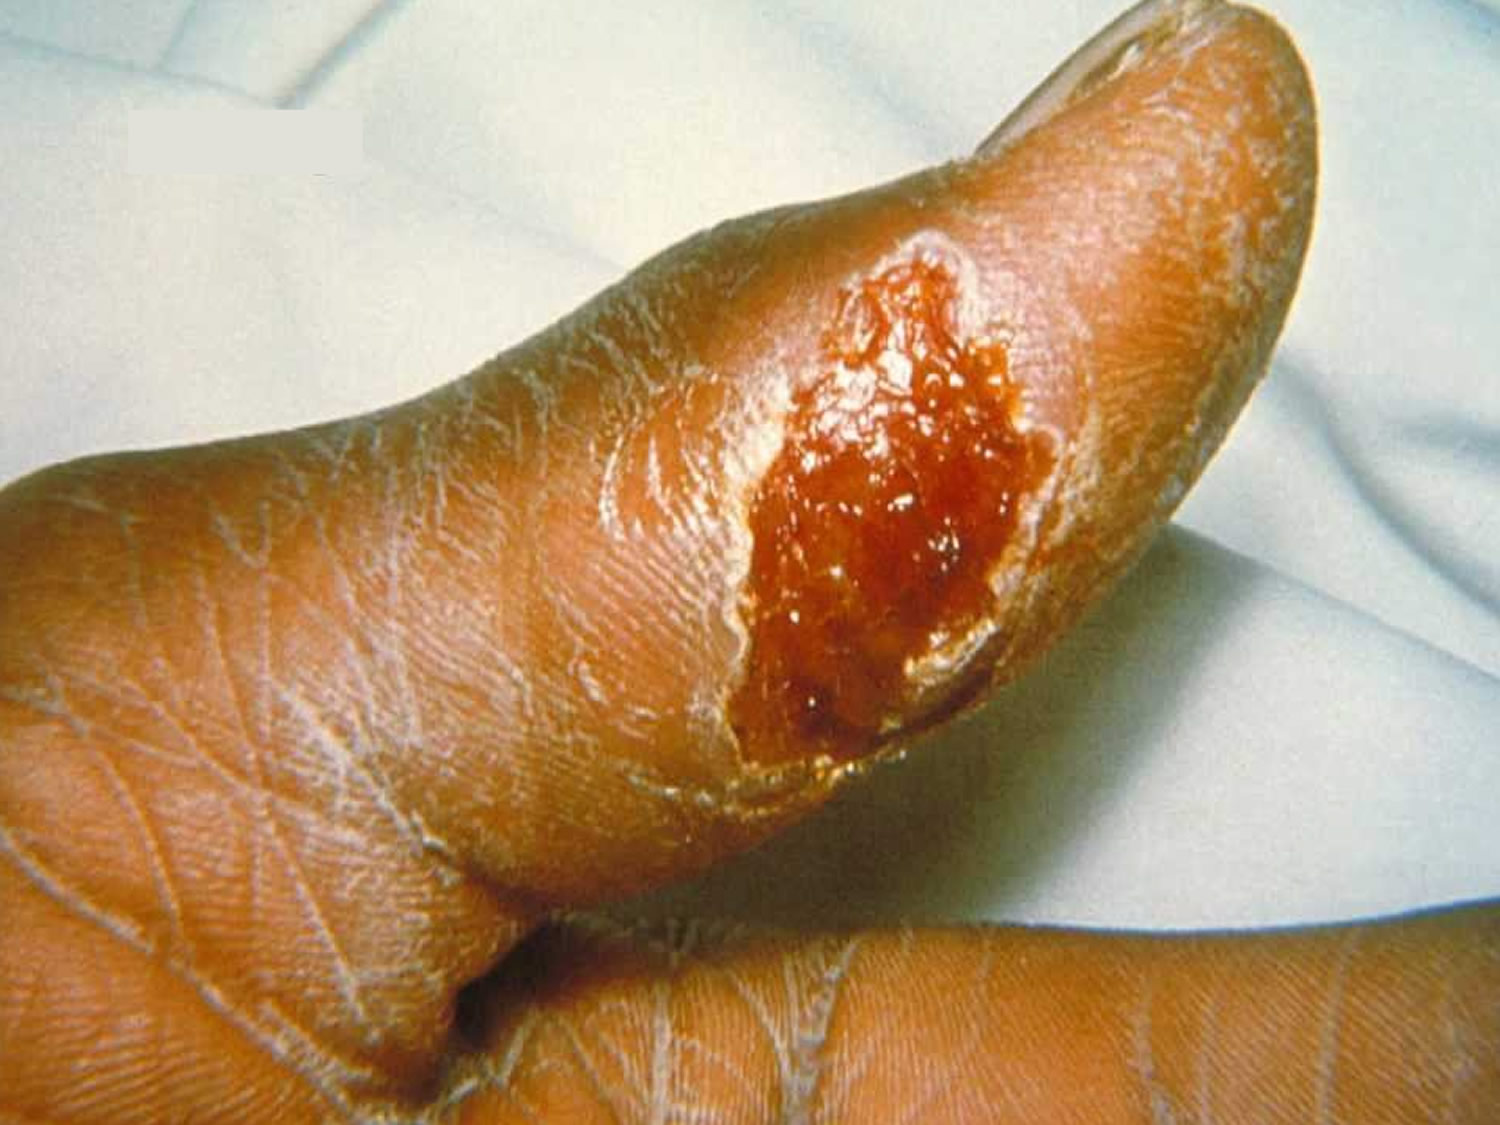 An ulcer caused by Francisella tularensis